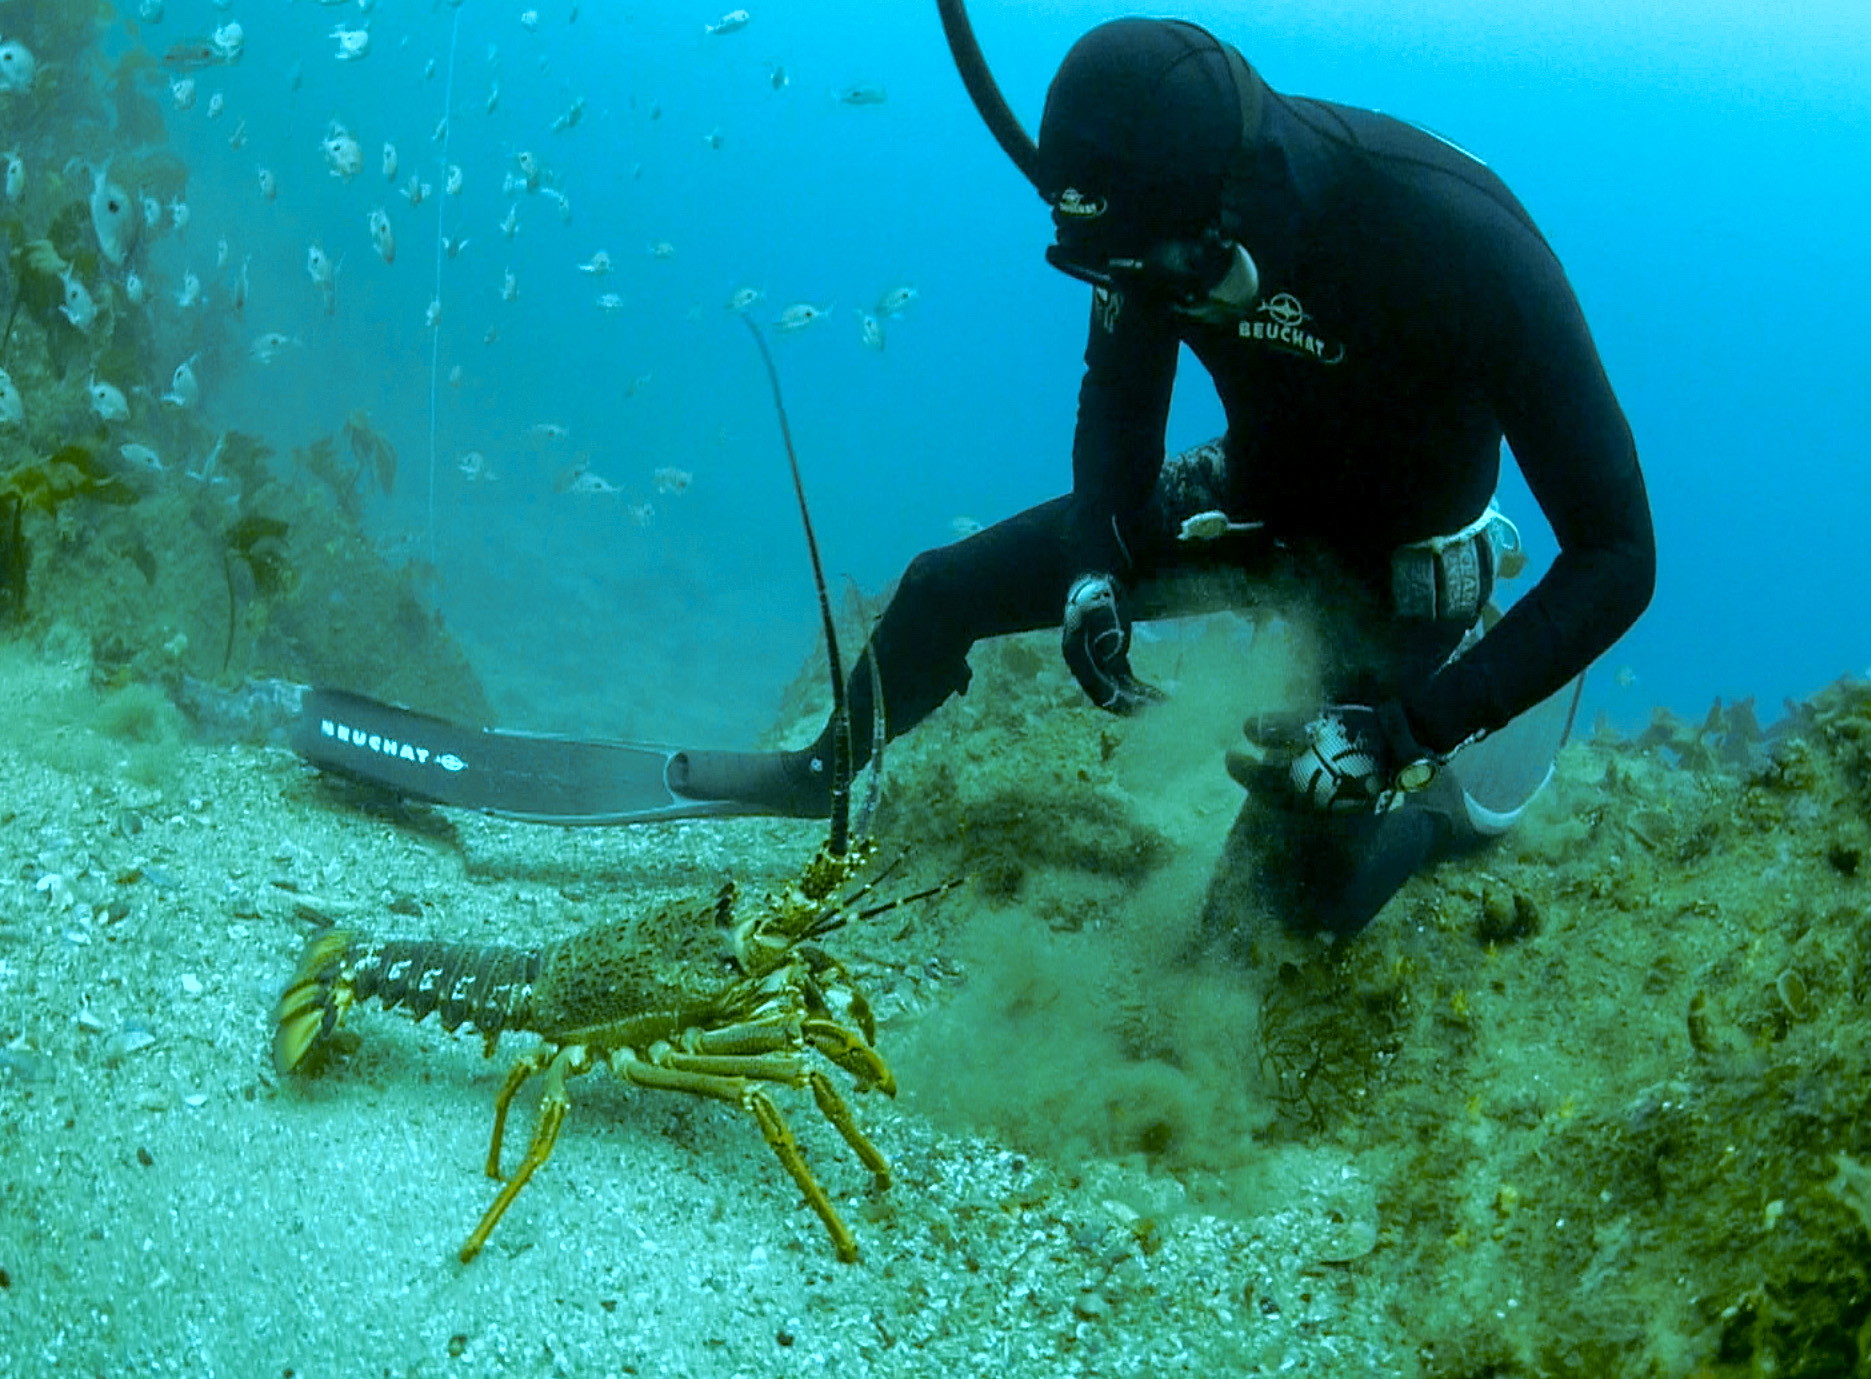 Get the most out of your spearfishing trips with our insider's tips and advice.